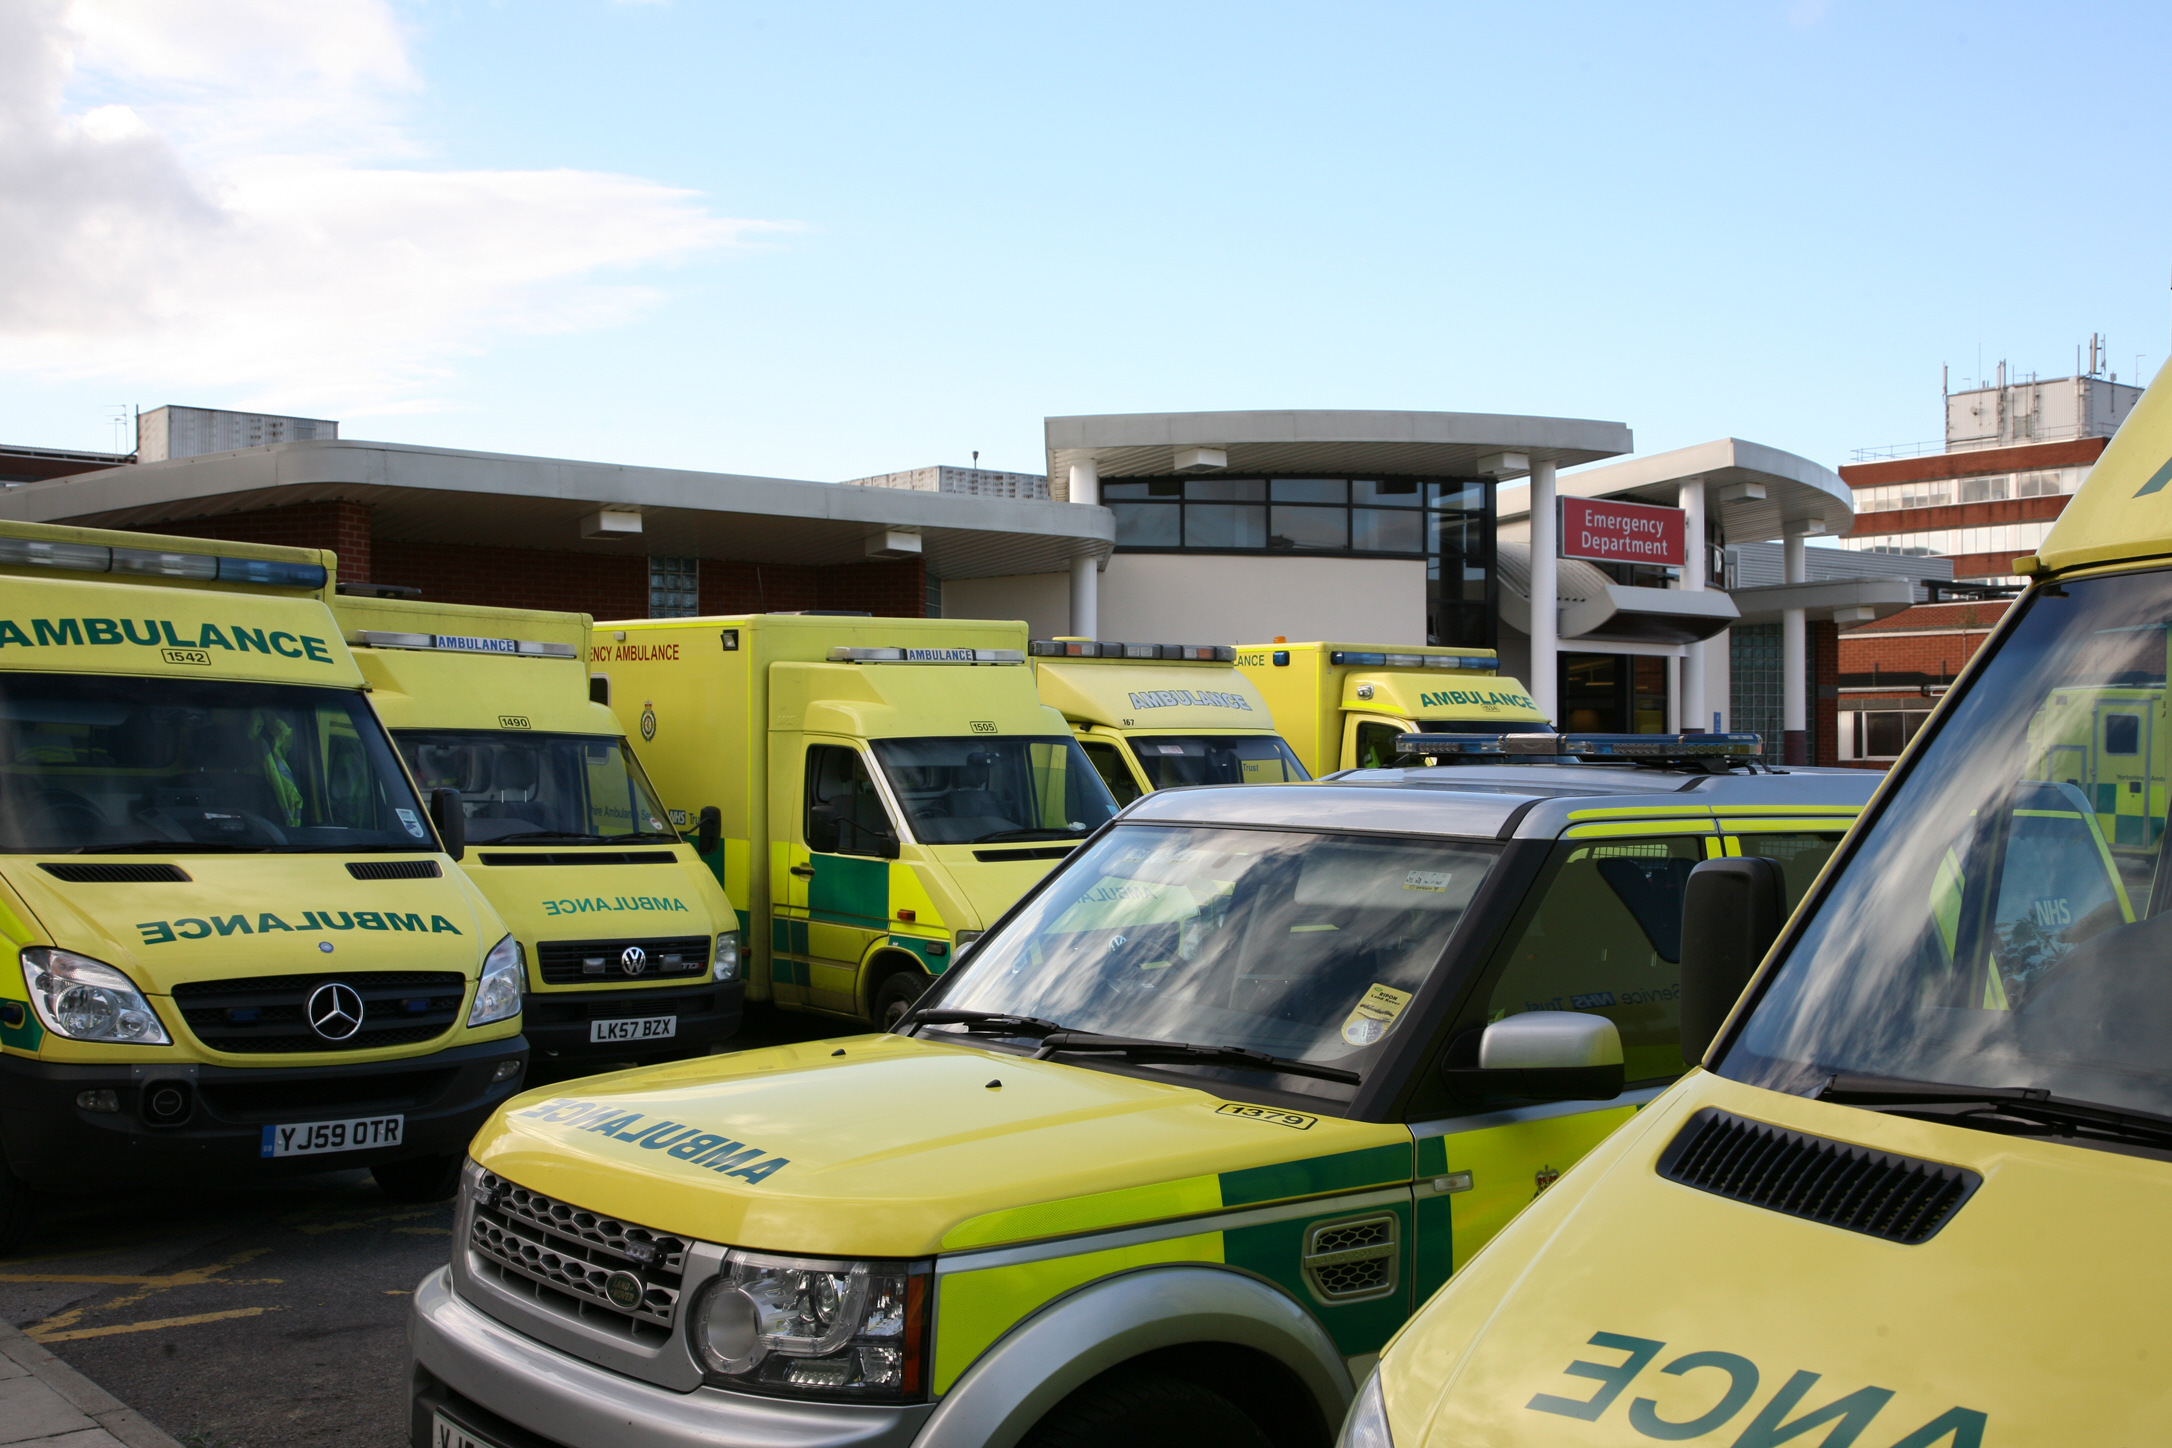 INDUSTRIAL ACTION: Up to 400 ambulance staff across Yorkshire could take part in the daytime strikes this Friday and Tuesday